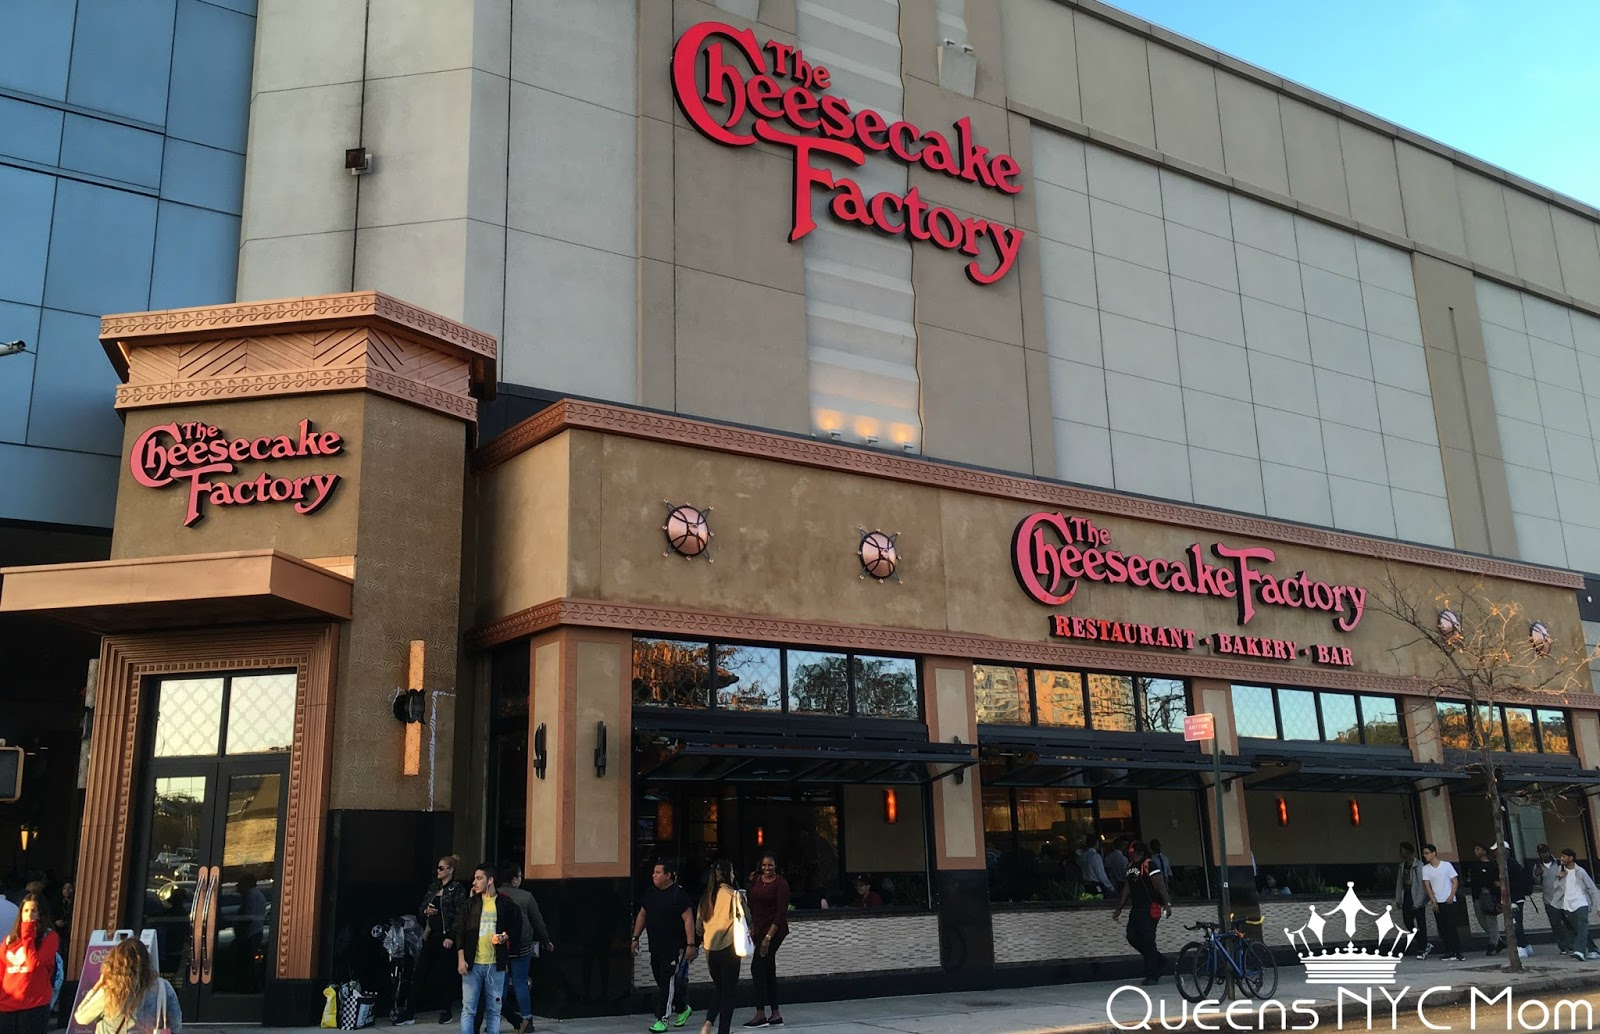 Complete Cheesecake Factory in New York Store Locator. List of all Cheesecake Factory locations in New York. Find hours of operation, street address, driving map, and contact information.